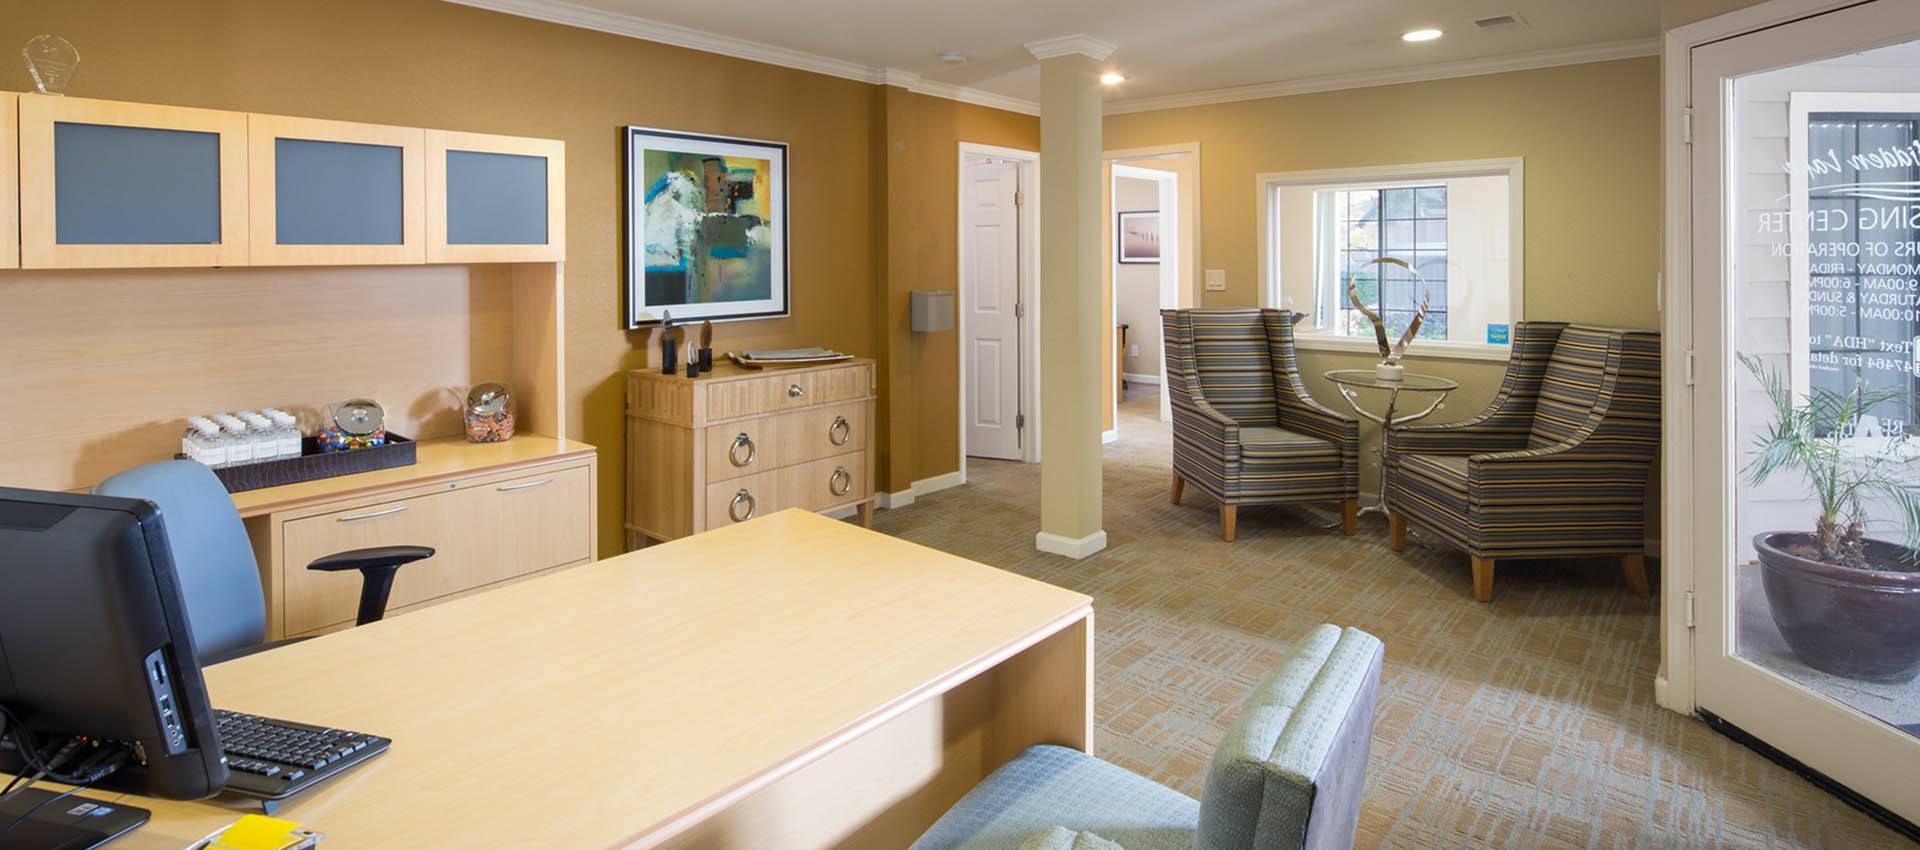 Leasing Office Interior at Hidden Lake Condominium Rentals in Sacramento, California